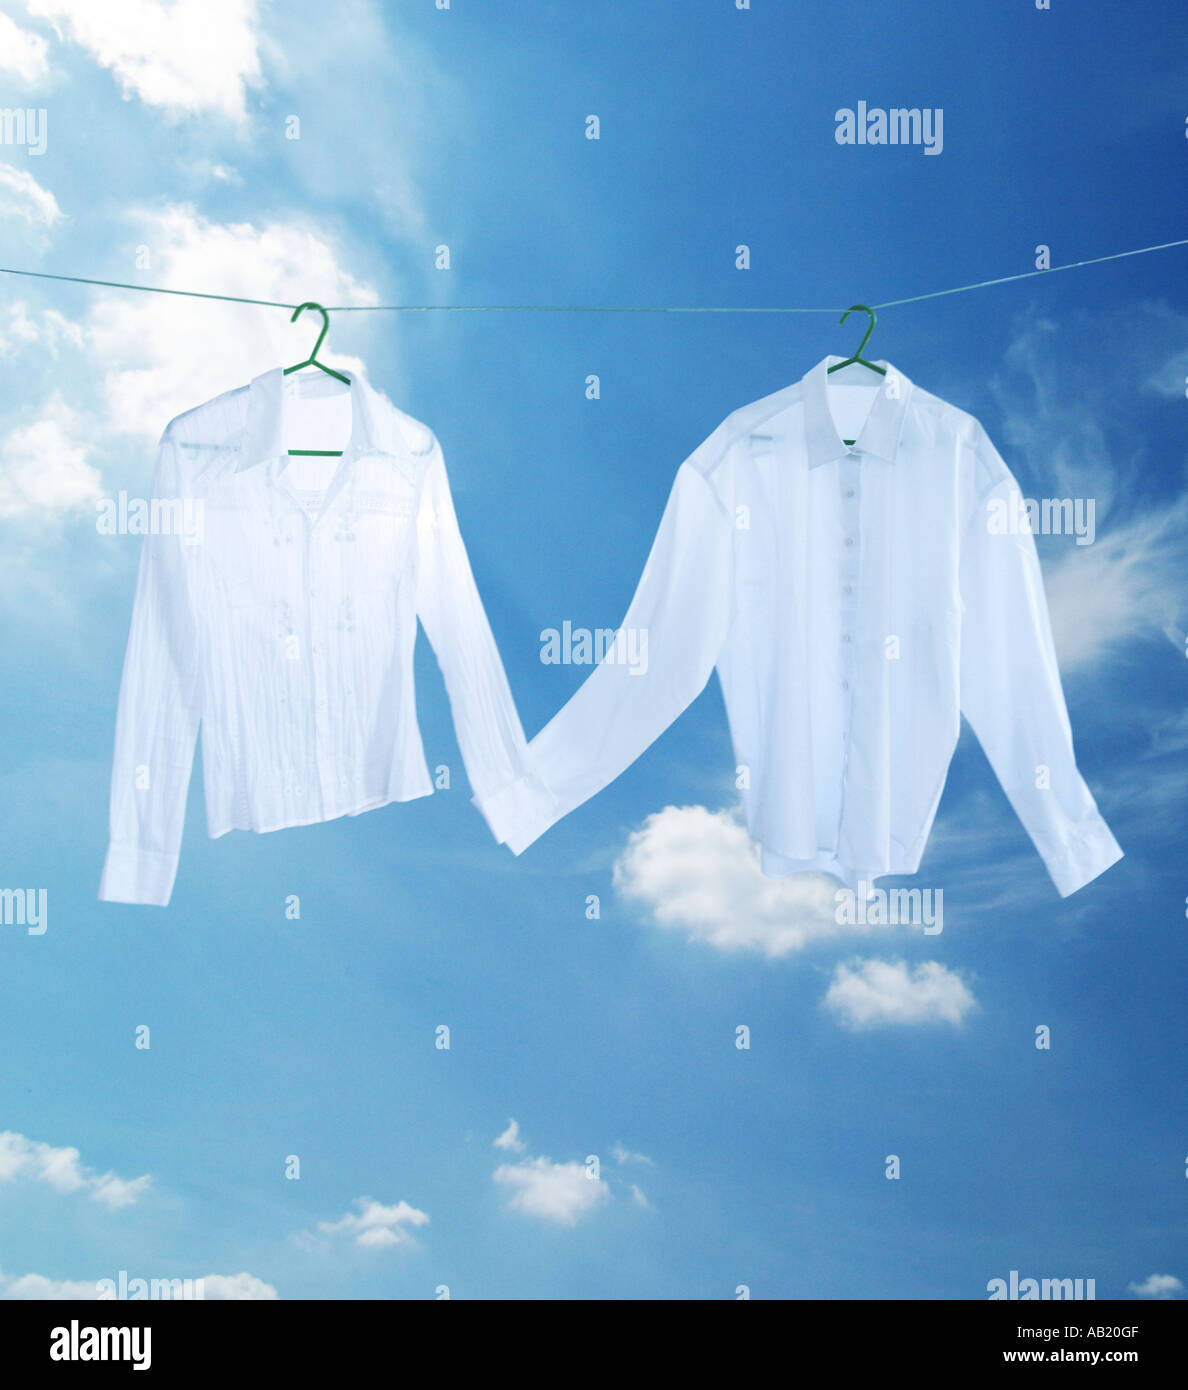 white shirts on a washing line holding hands - Stock Image